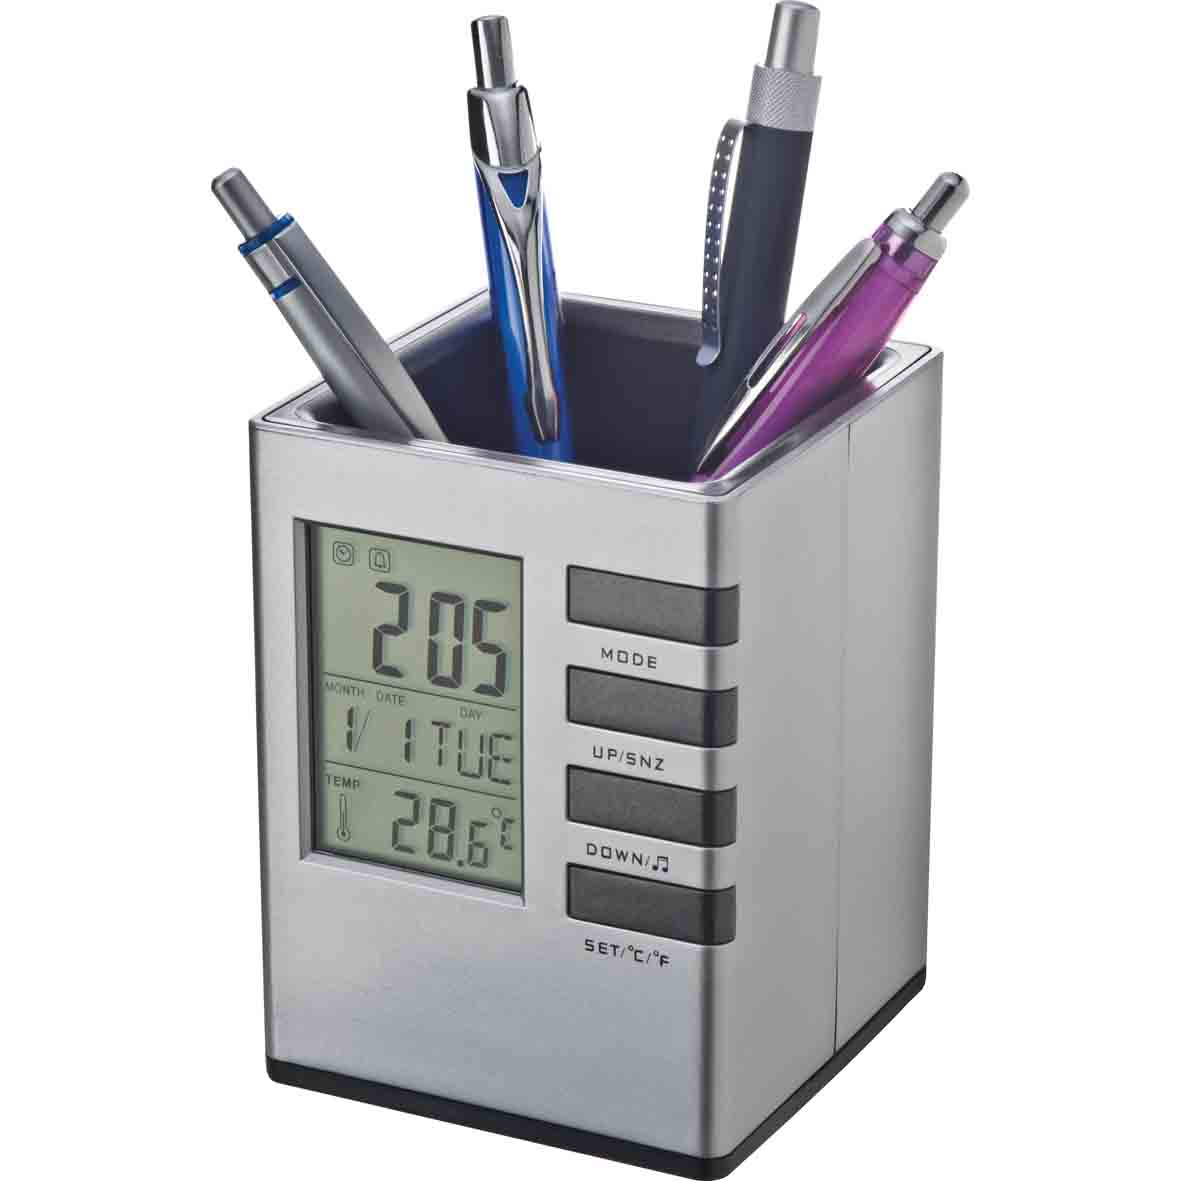 Plastic pen holder with space for pens and other desk accessories. mac-28715